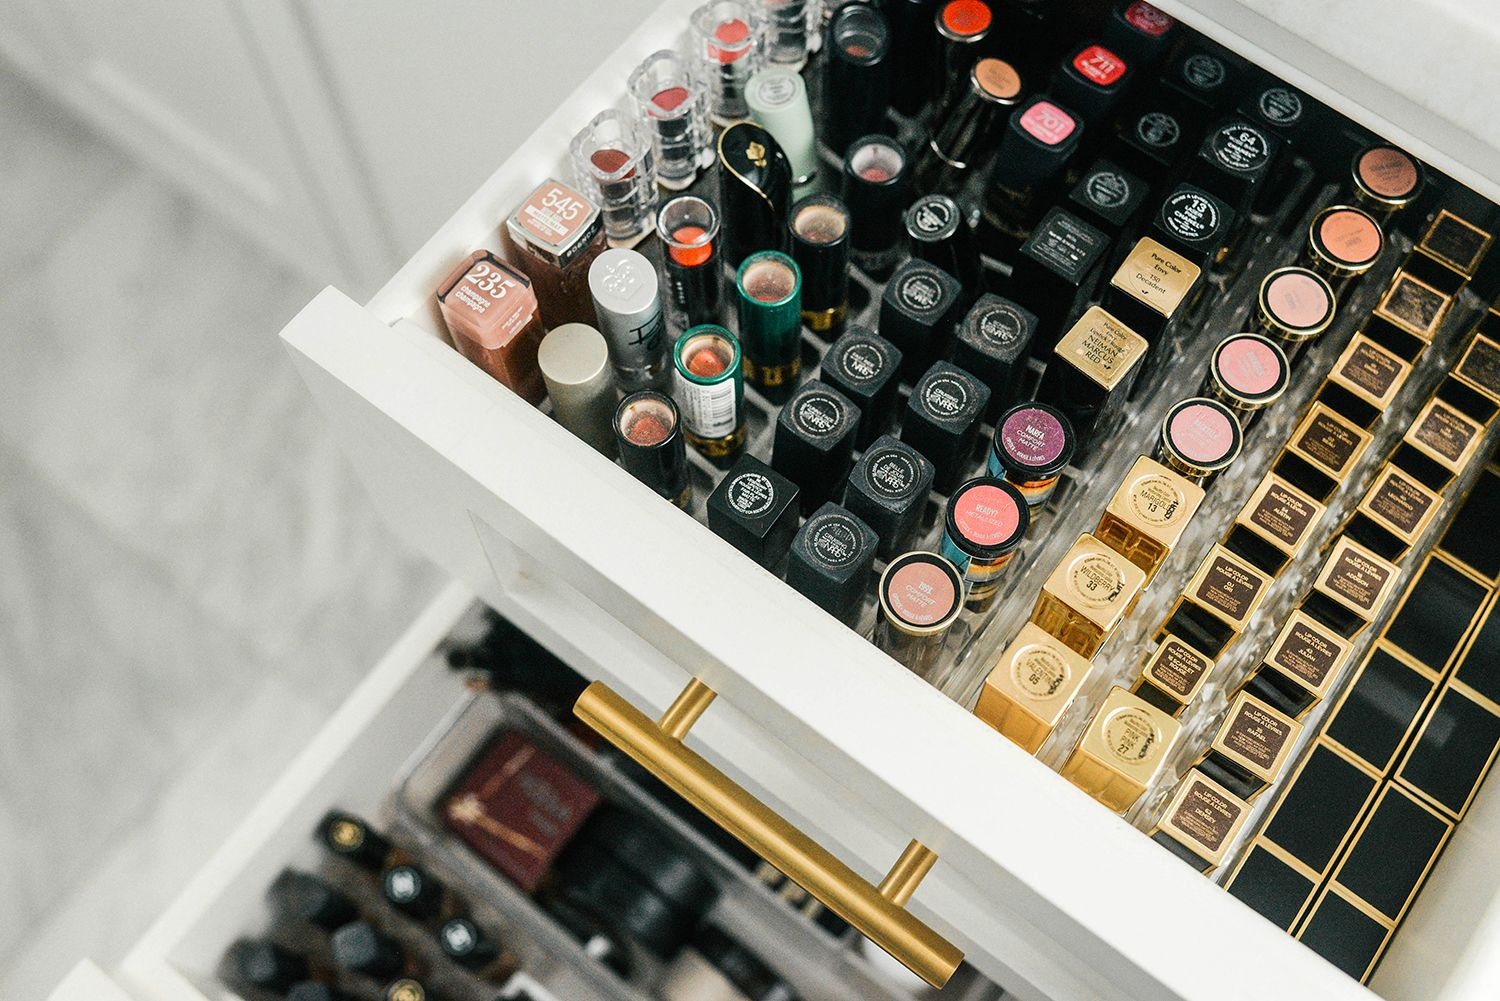 Makeup Organizer Ideas 7 Brilliant